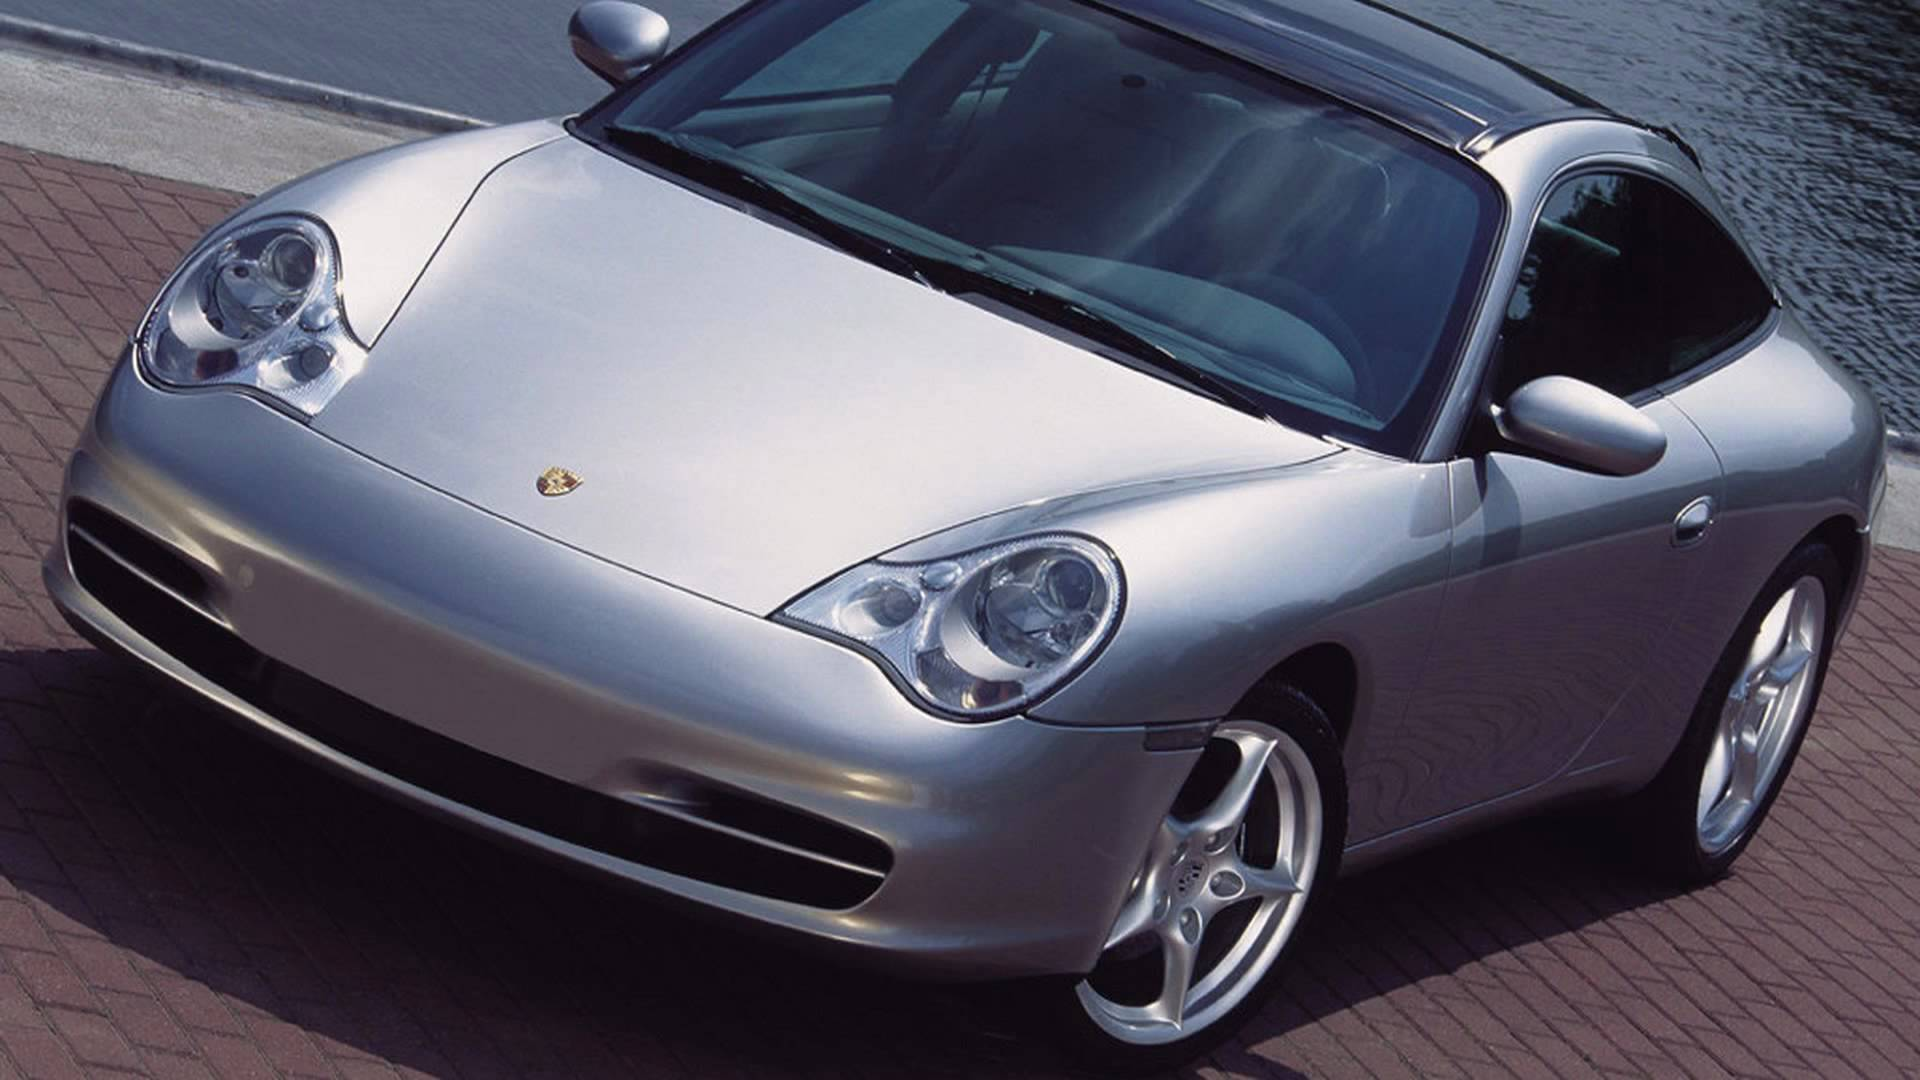 2003 porsche 911 targa 996 pictures information and specs auto. Black Bedroom Furniture Sets. Home Design Ideas